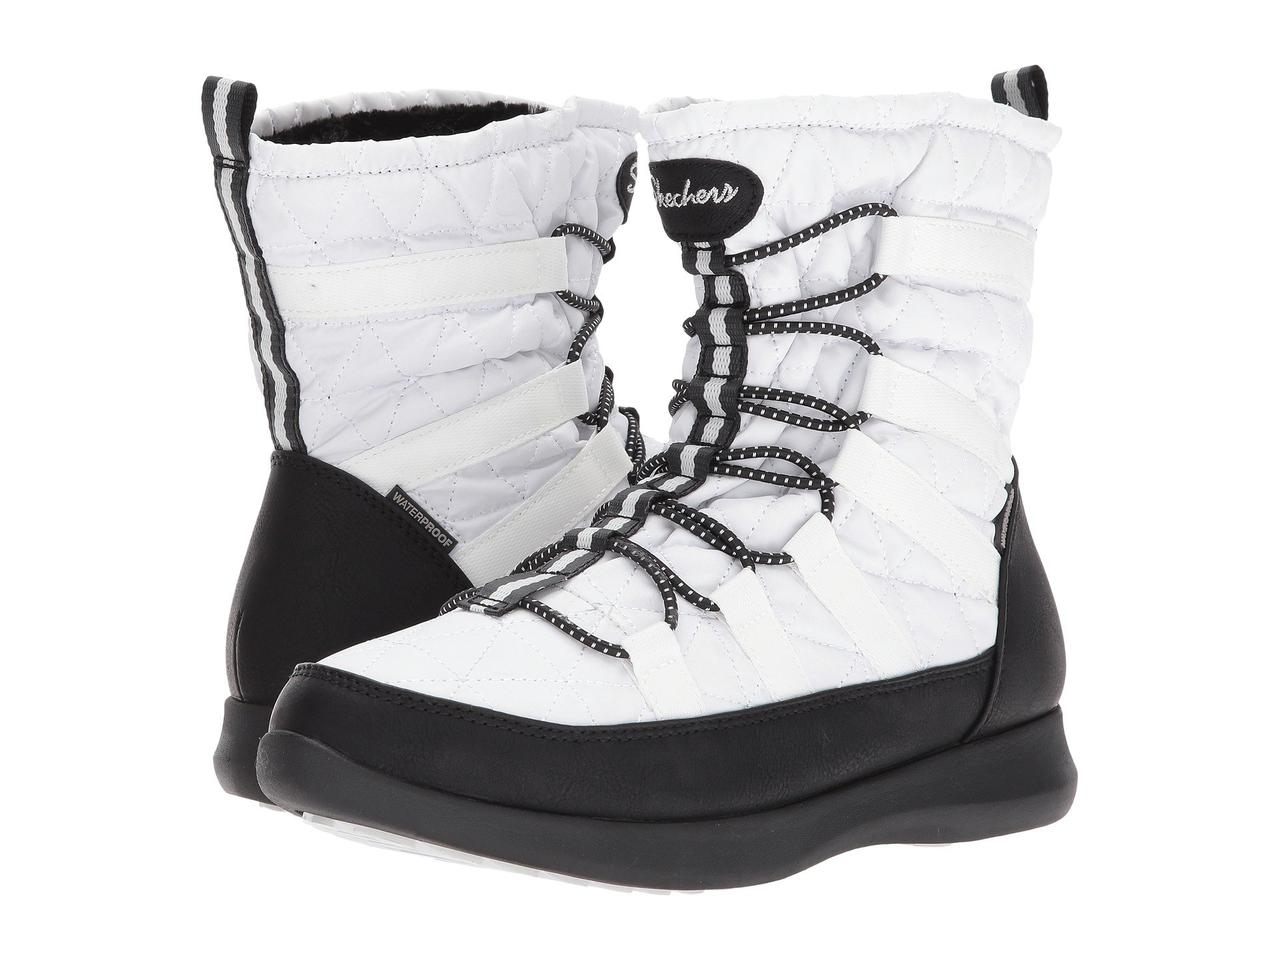 Сапоги SKECHERS Boulder - East Stone White Black - Оригинал — в ... 8e90dd24417